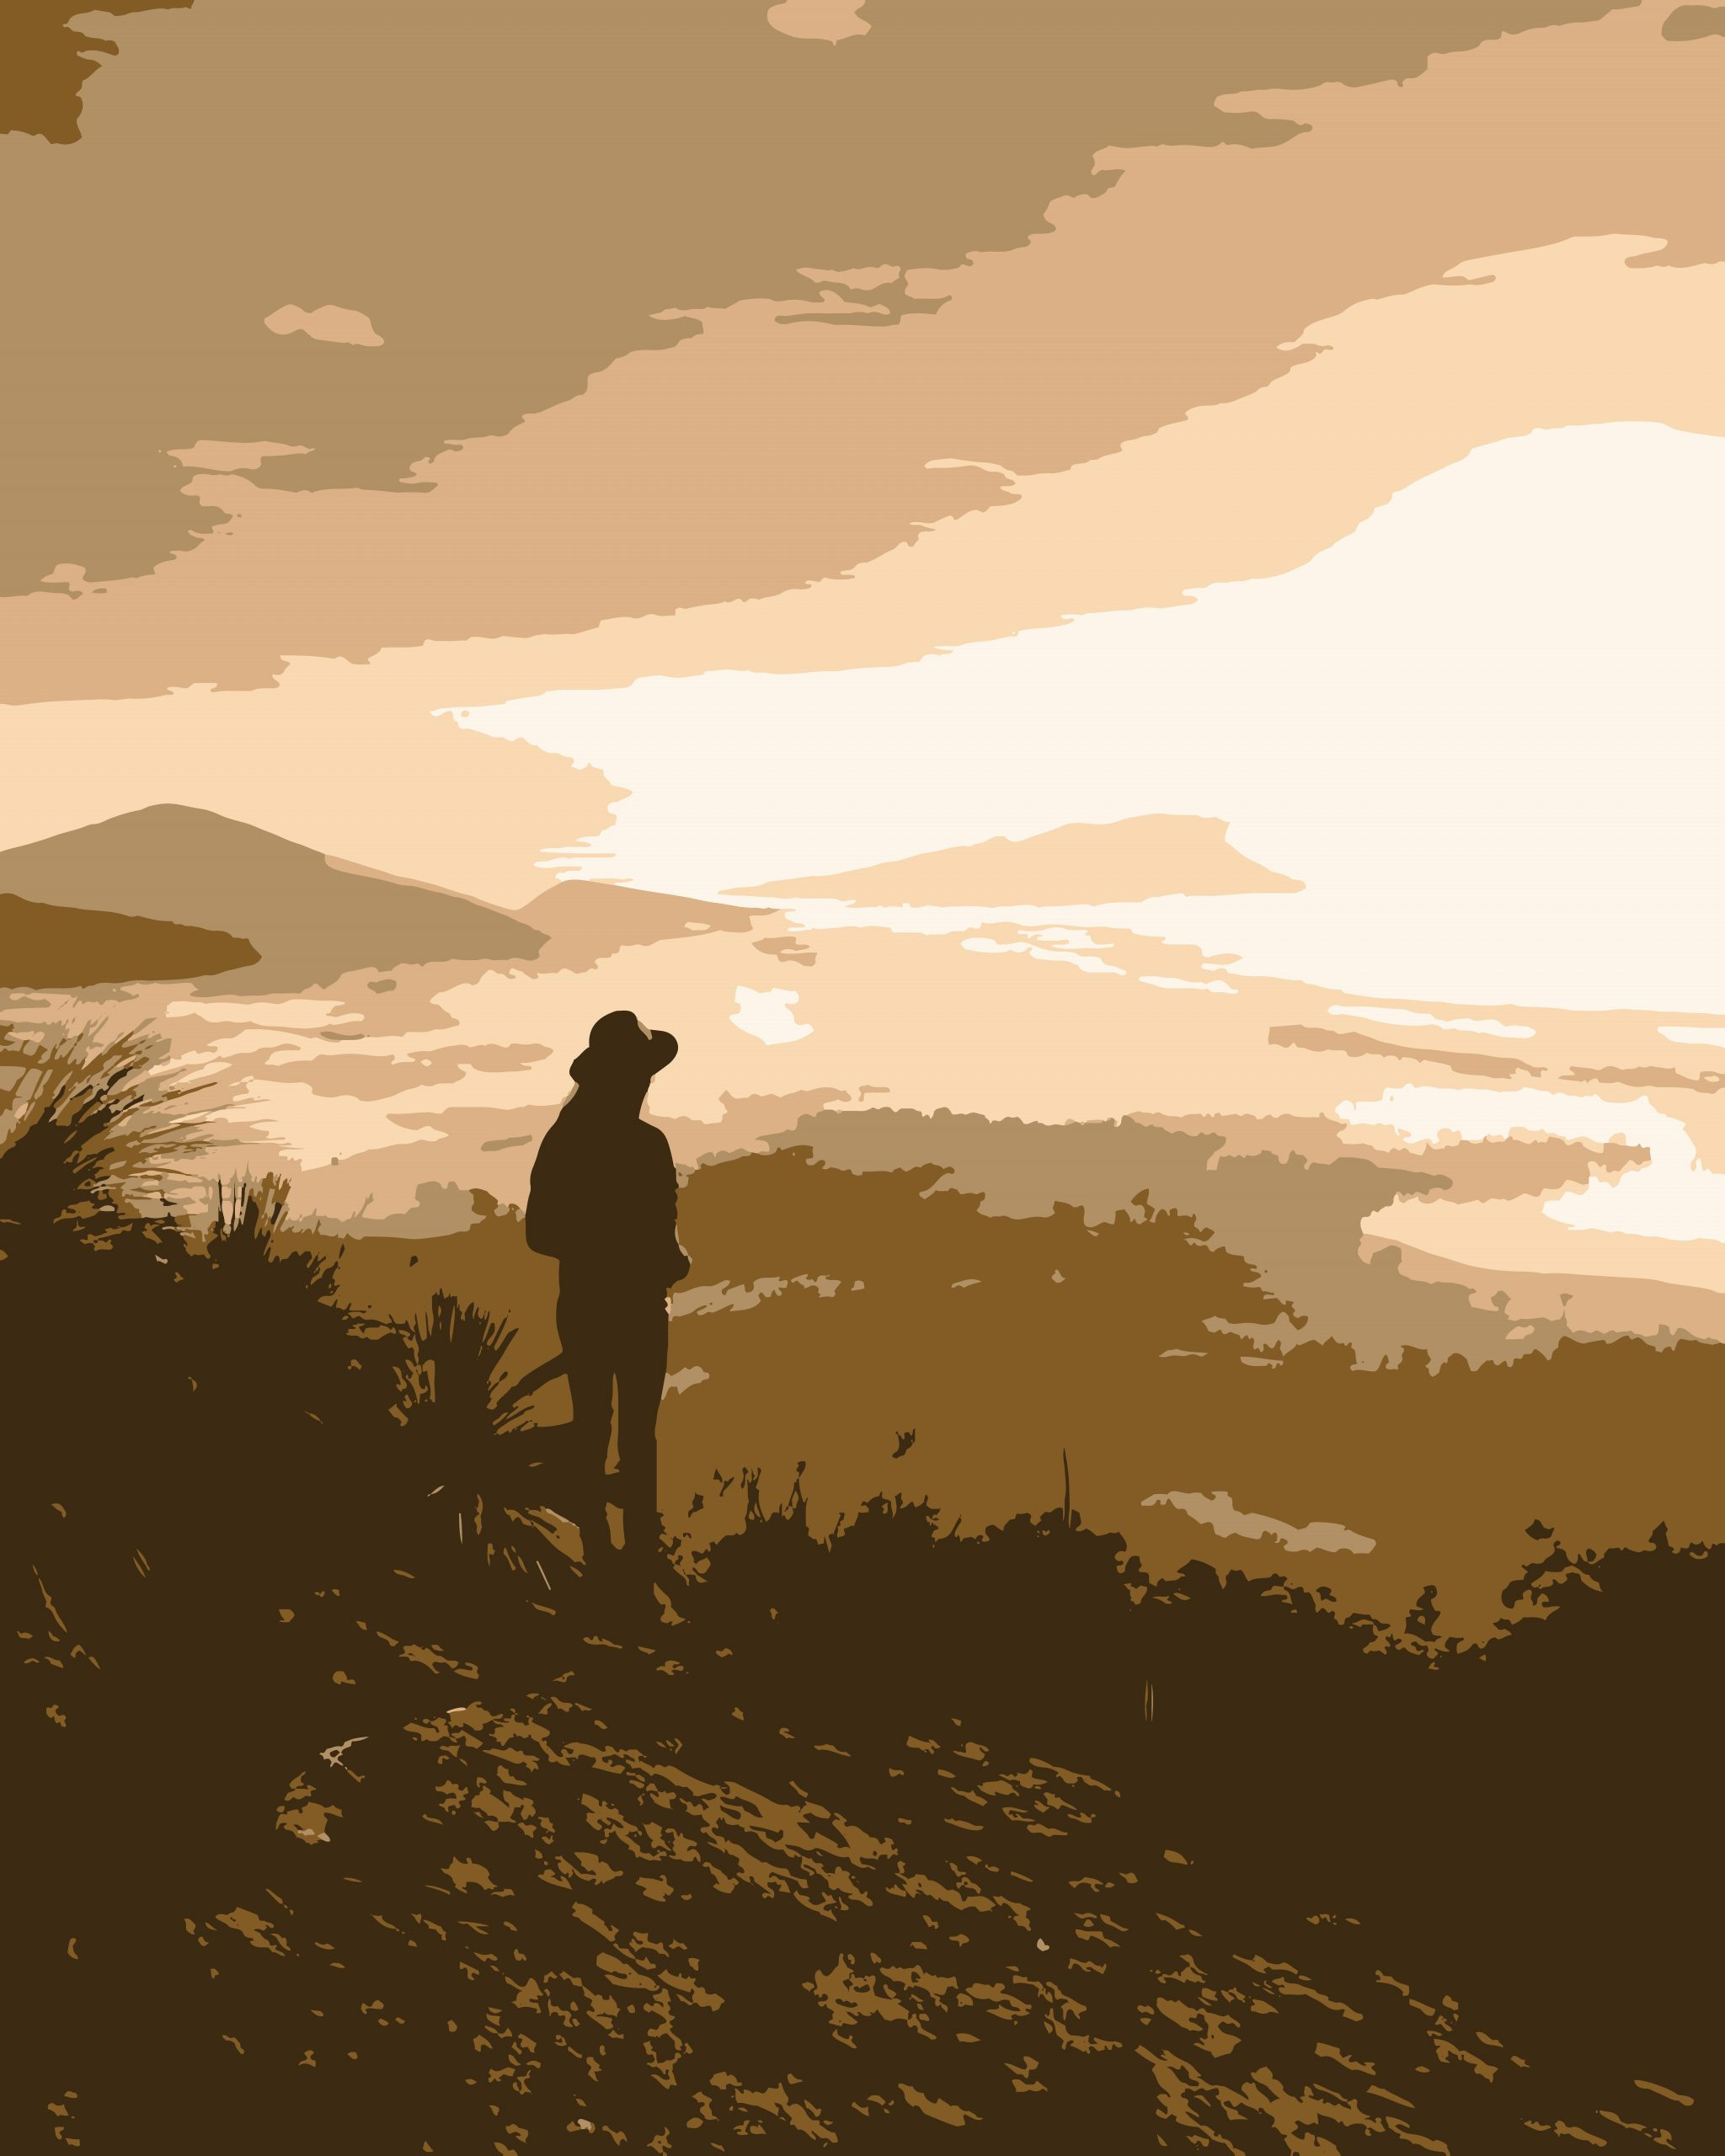 A man on a hill top